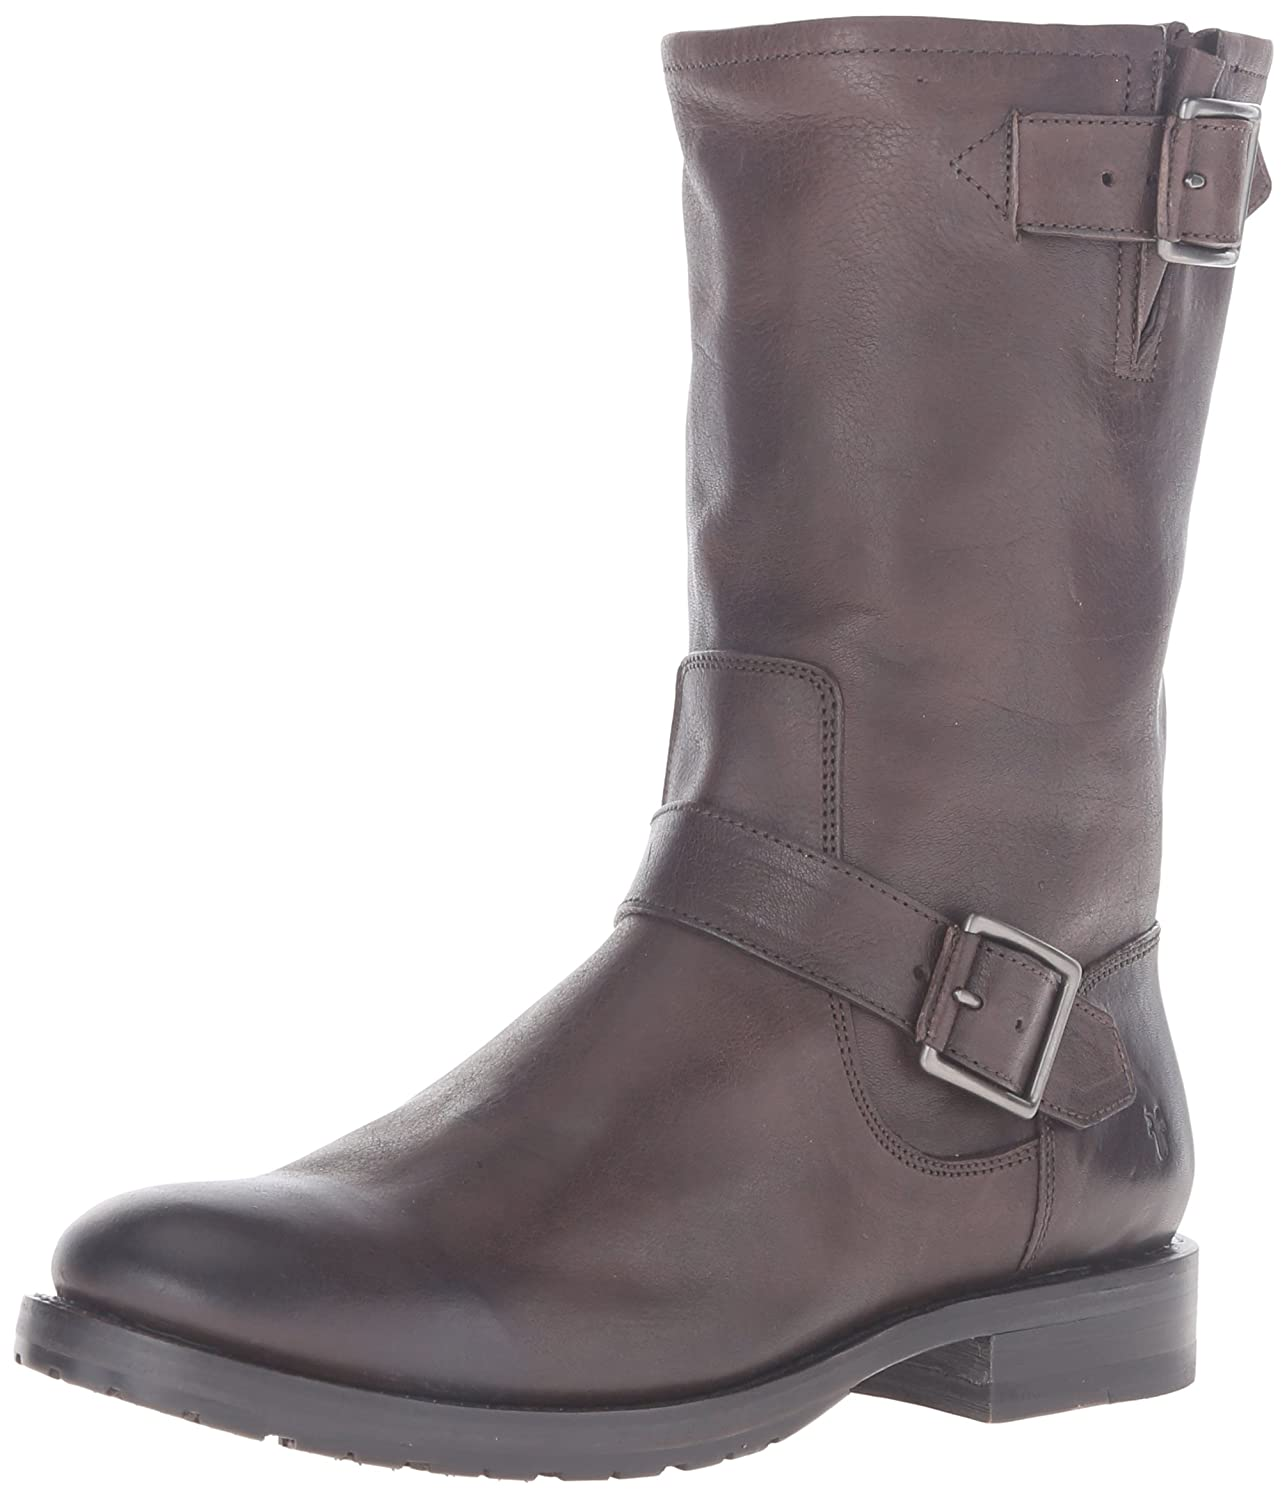 FRYE Women's Natalie Mid Engineer Boot B0193YVTEY 7.5 B(M) US|Charcoal